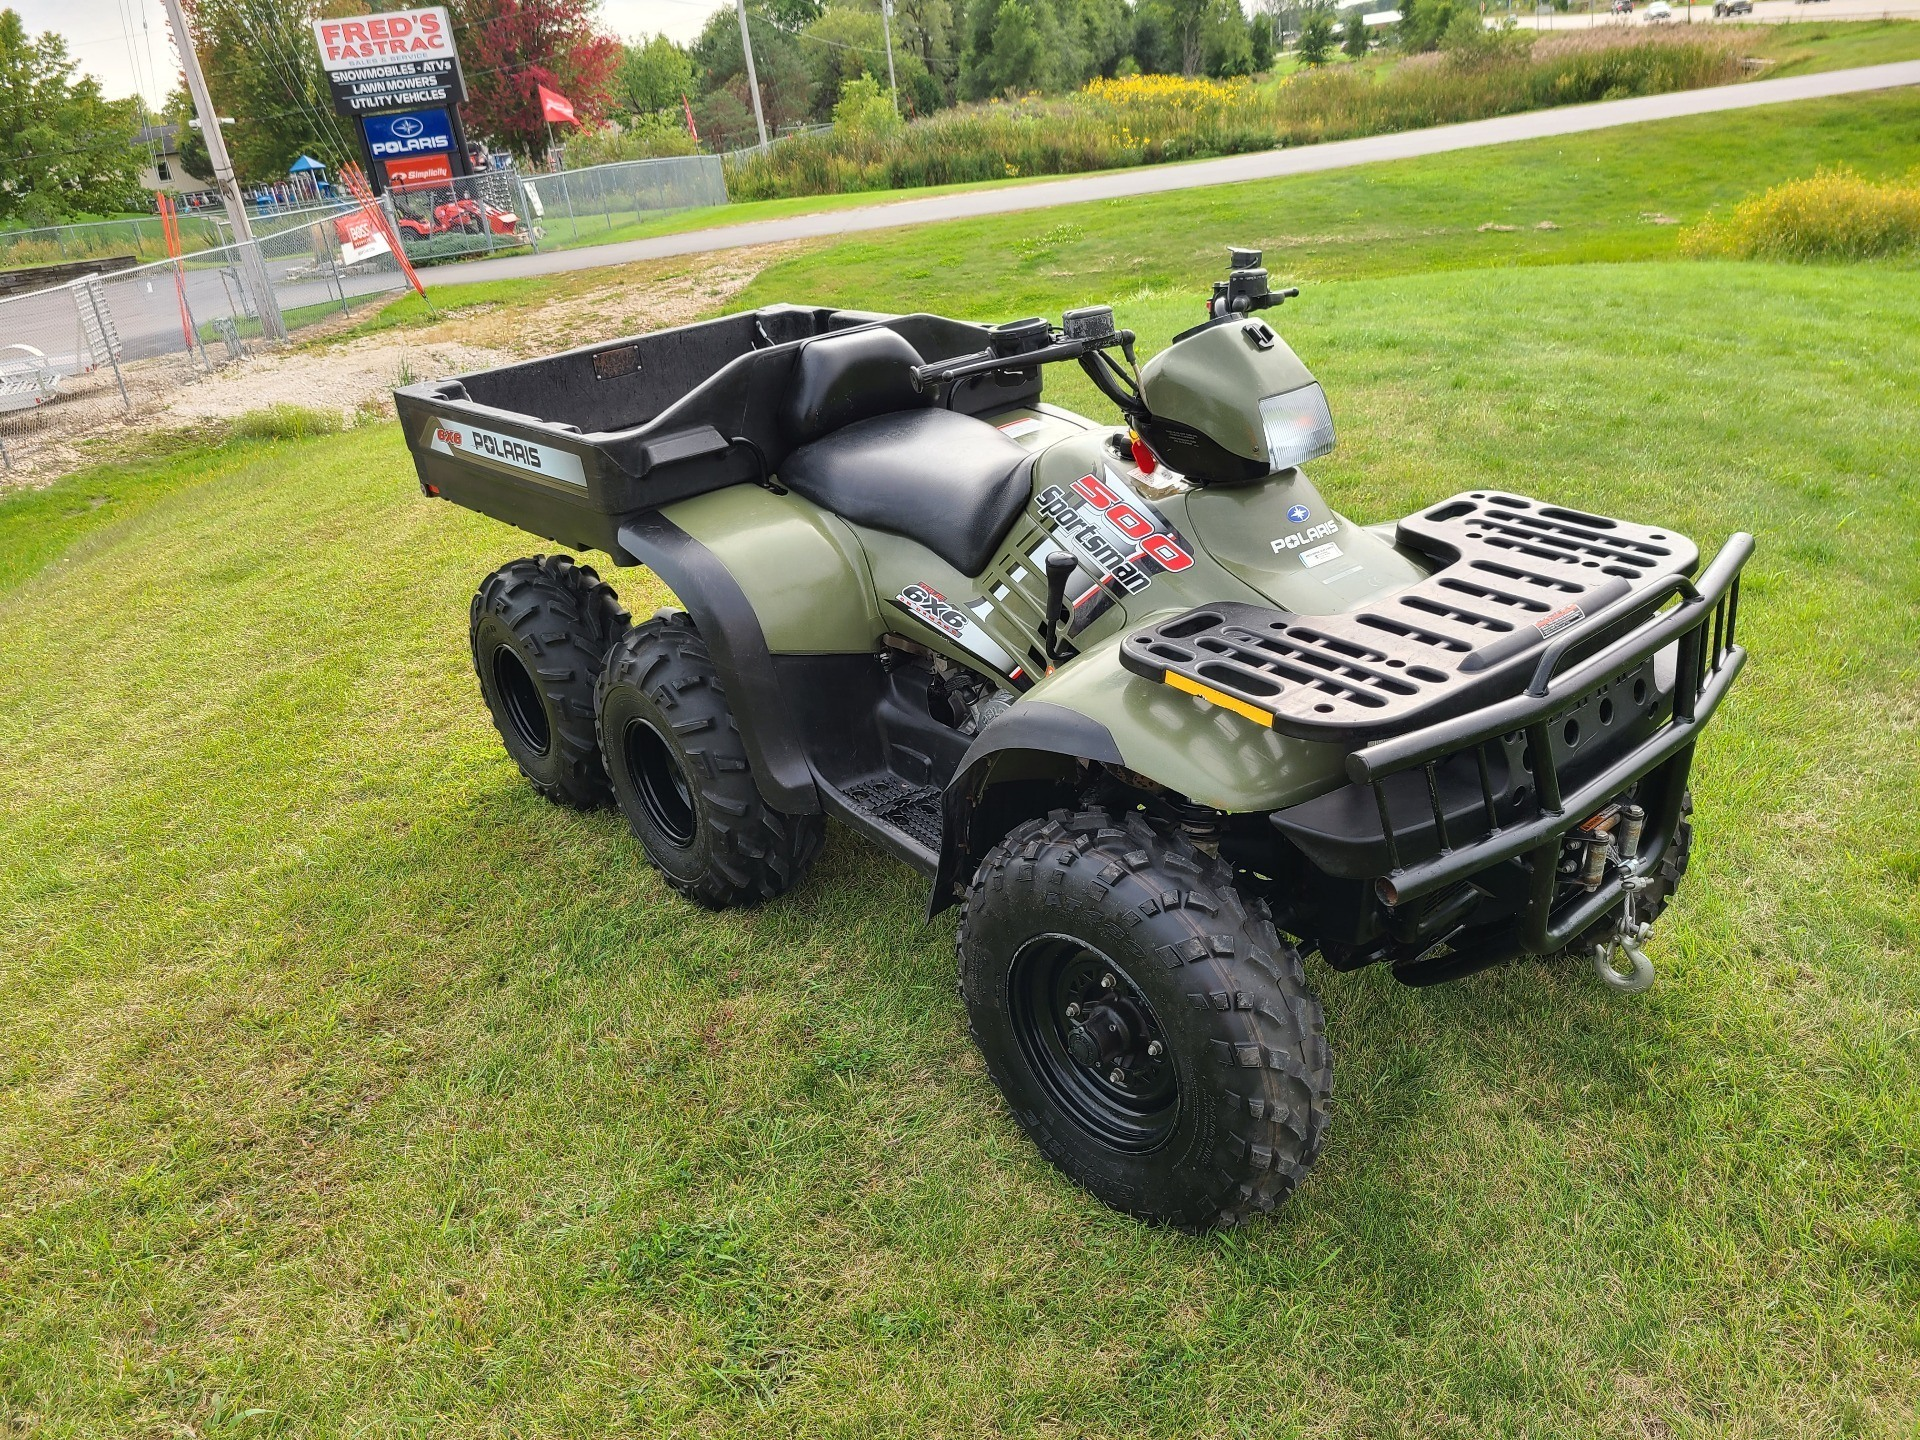 2004 Polaris Sportsman 6x6 in Fond Du Lac, Wisconsin - Photo 2